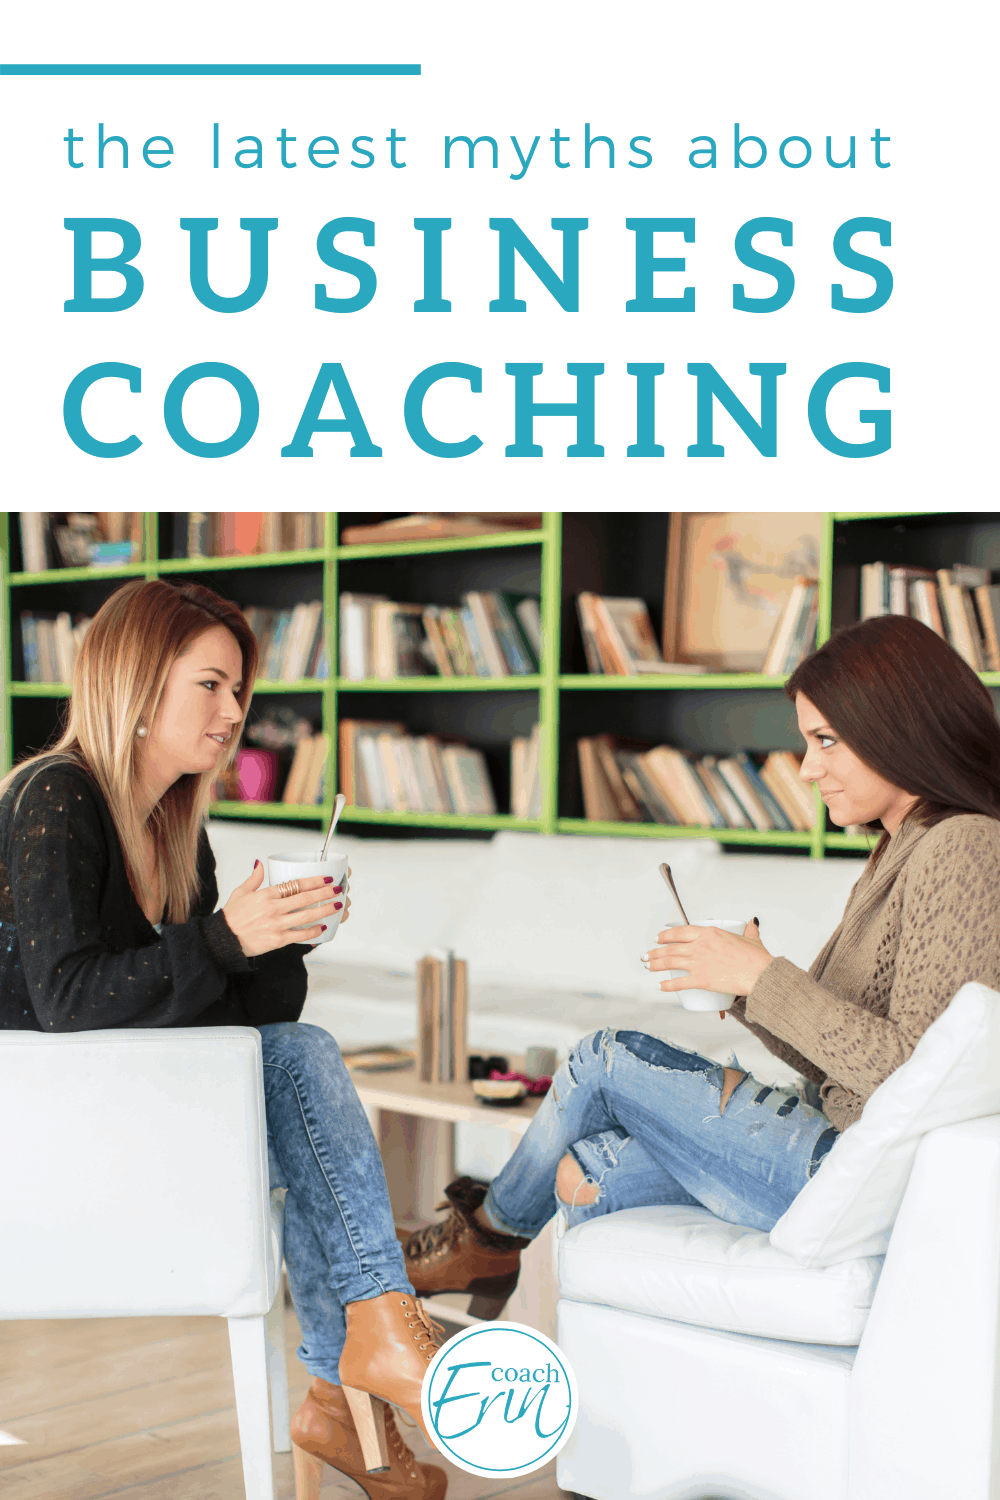 the latest myths about business coaching